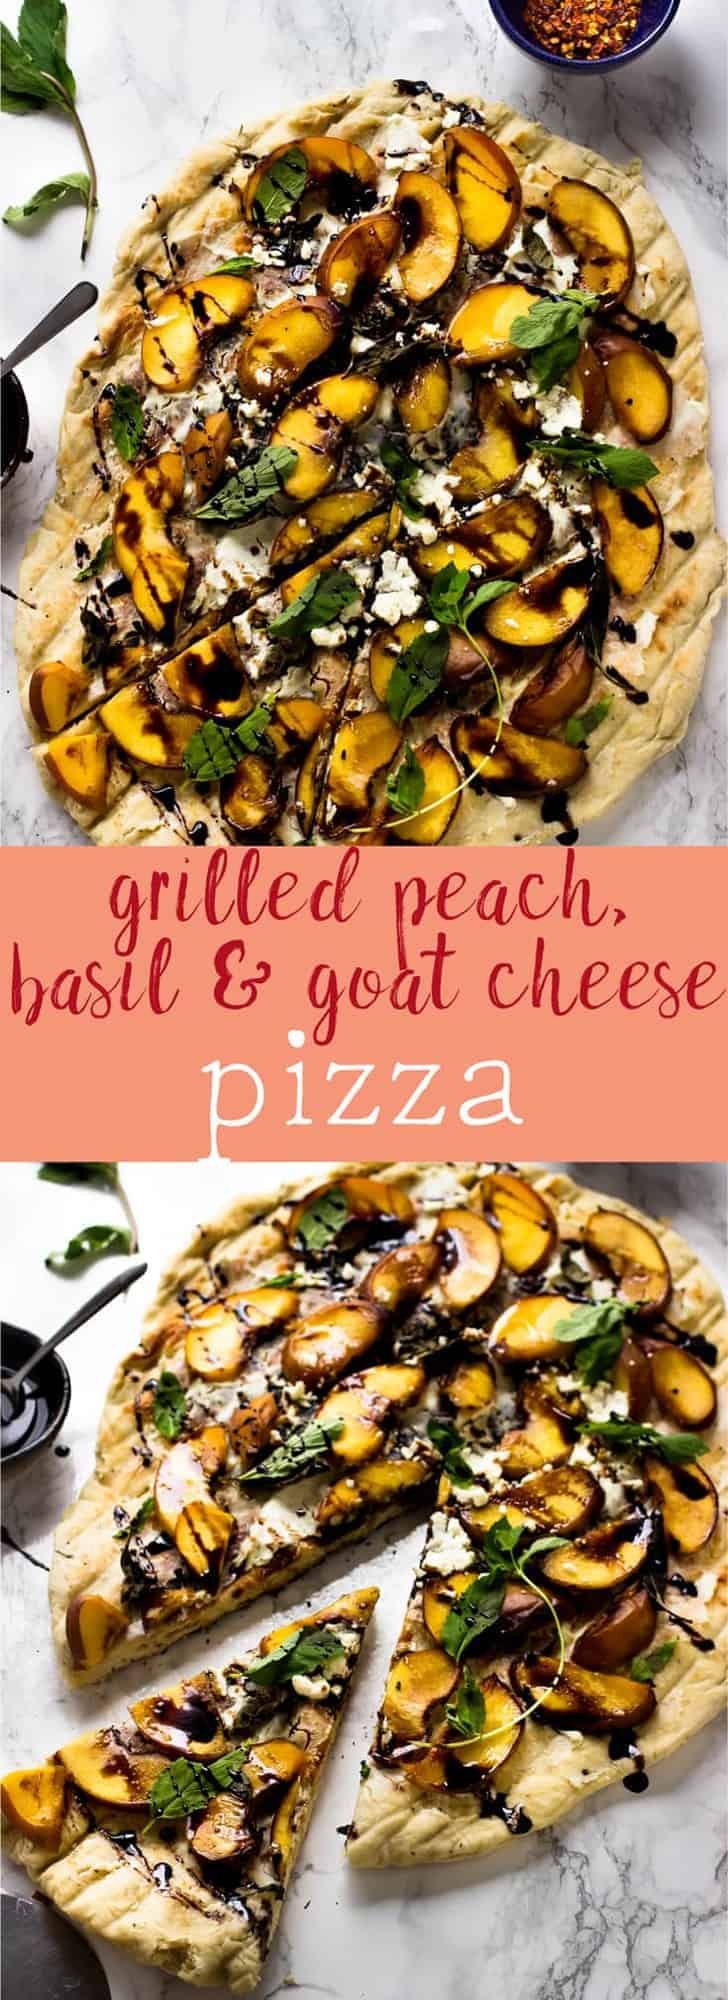 This Grilled Peach, Basil and Goat Cheese Pizza is topped with soft grilled peaches, creamy goat cheese and a delicious tangy balsamic drizzle. It's the perfect grilled summer pizza! via https://jessicainthekitchen.com